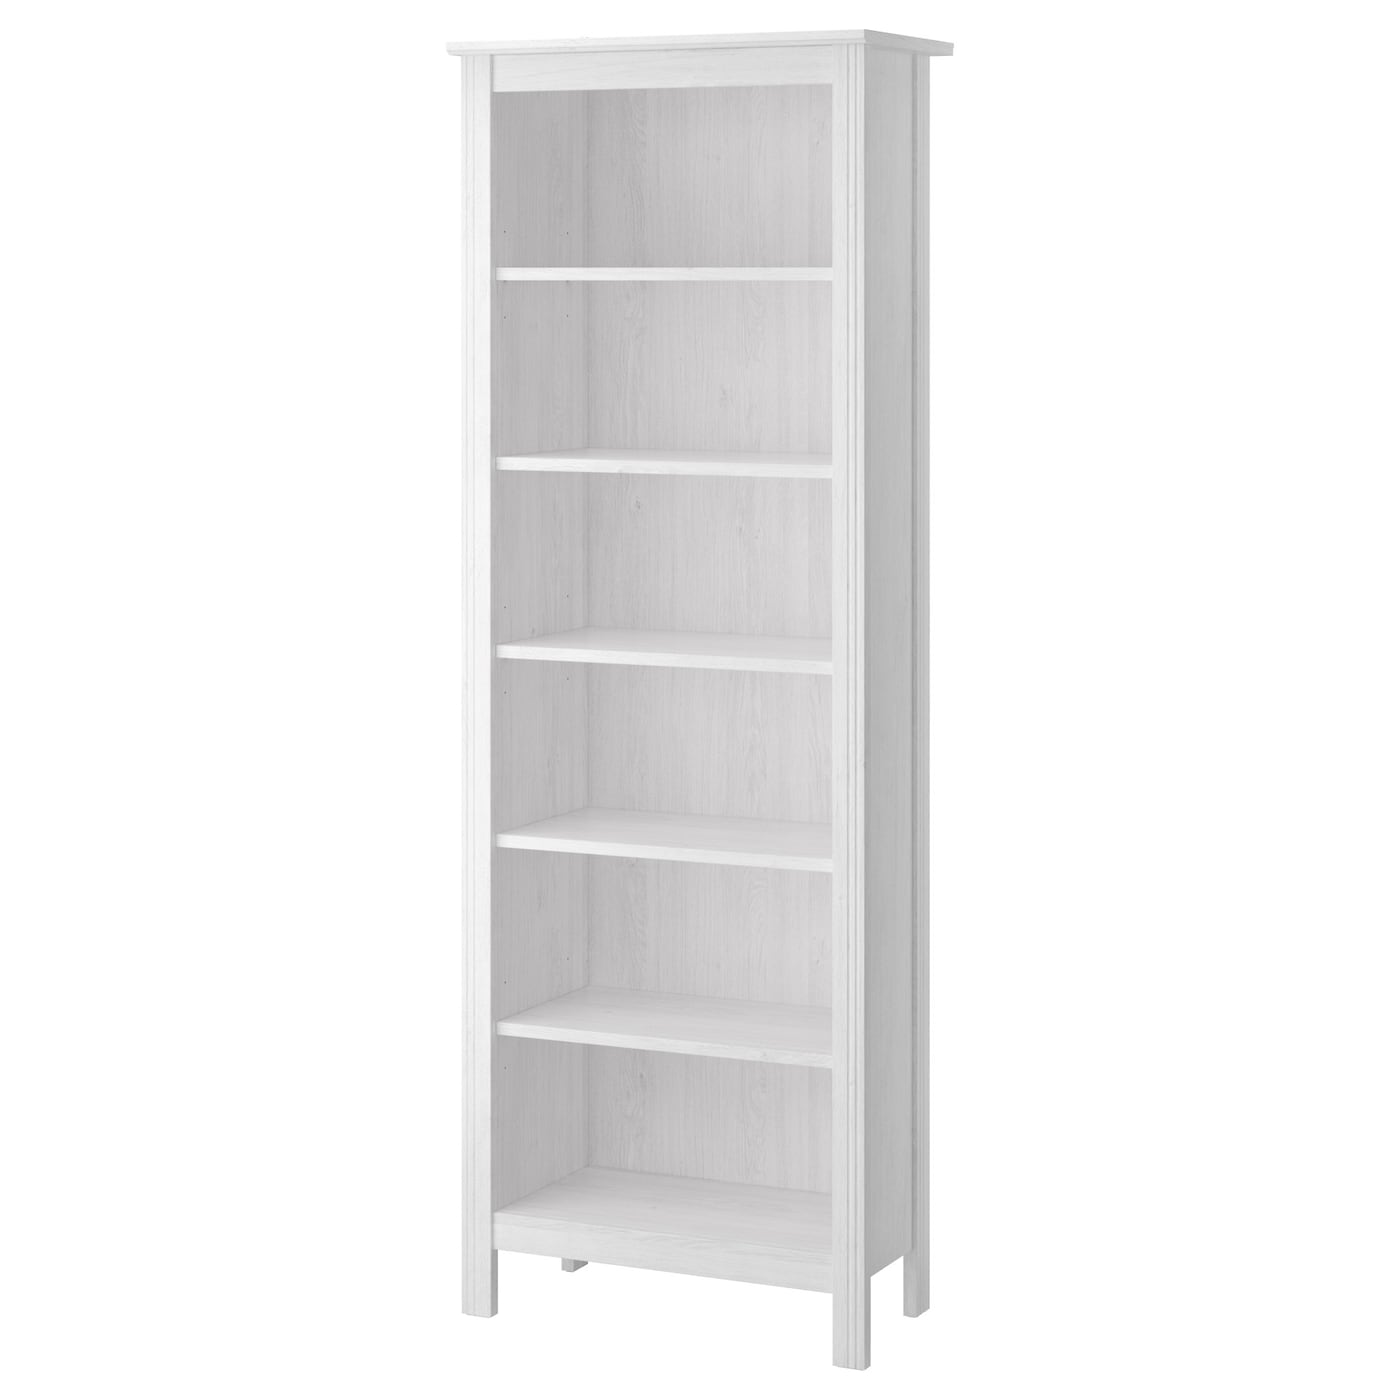 IKEA BRUSALI bookcase Adjustable shelves, so you can customise your storage as needed.